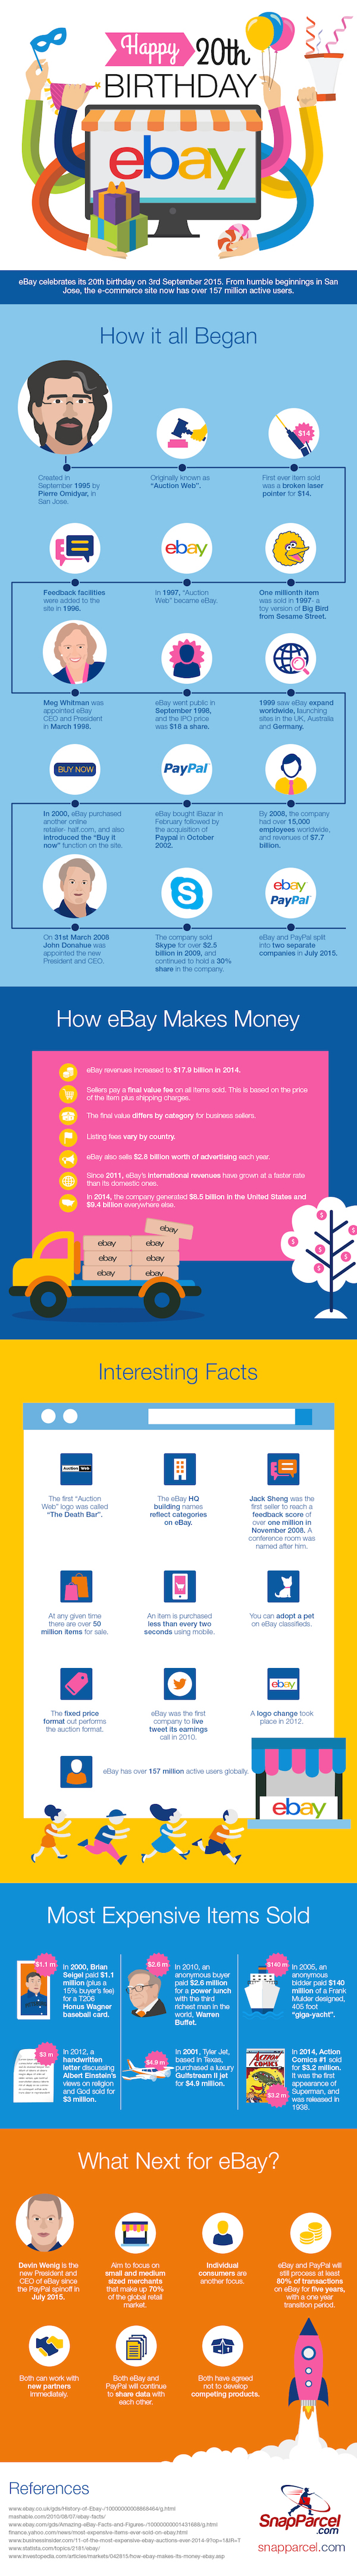 eBay-20th-Birthday-Infographic